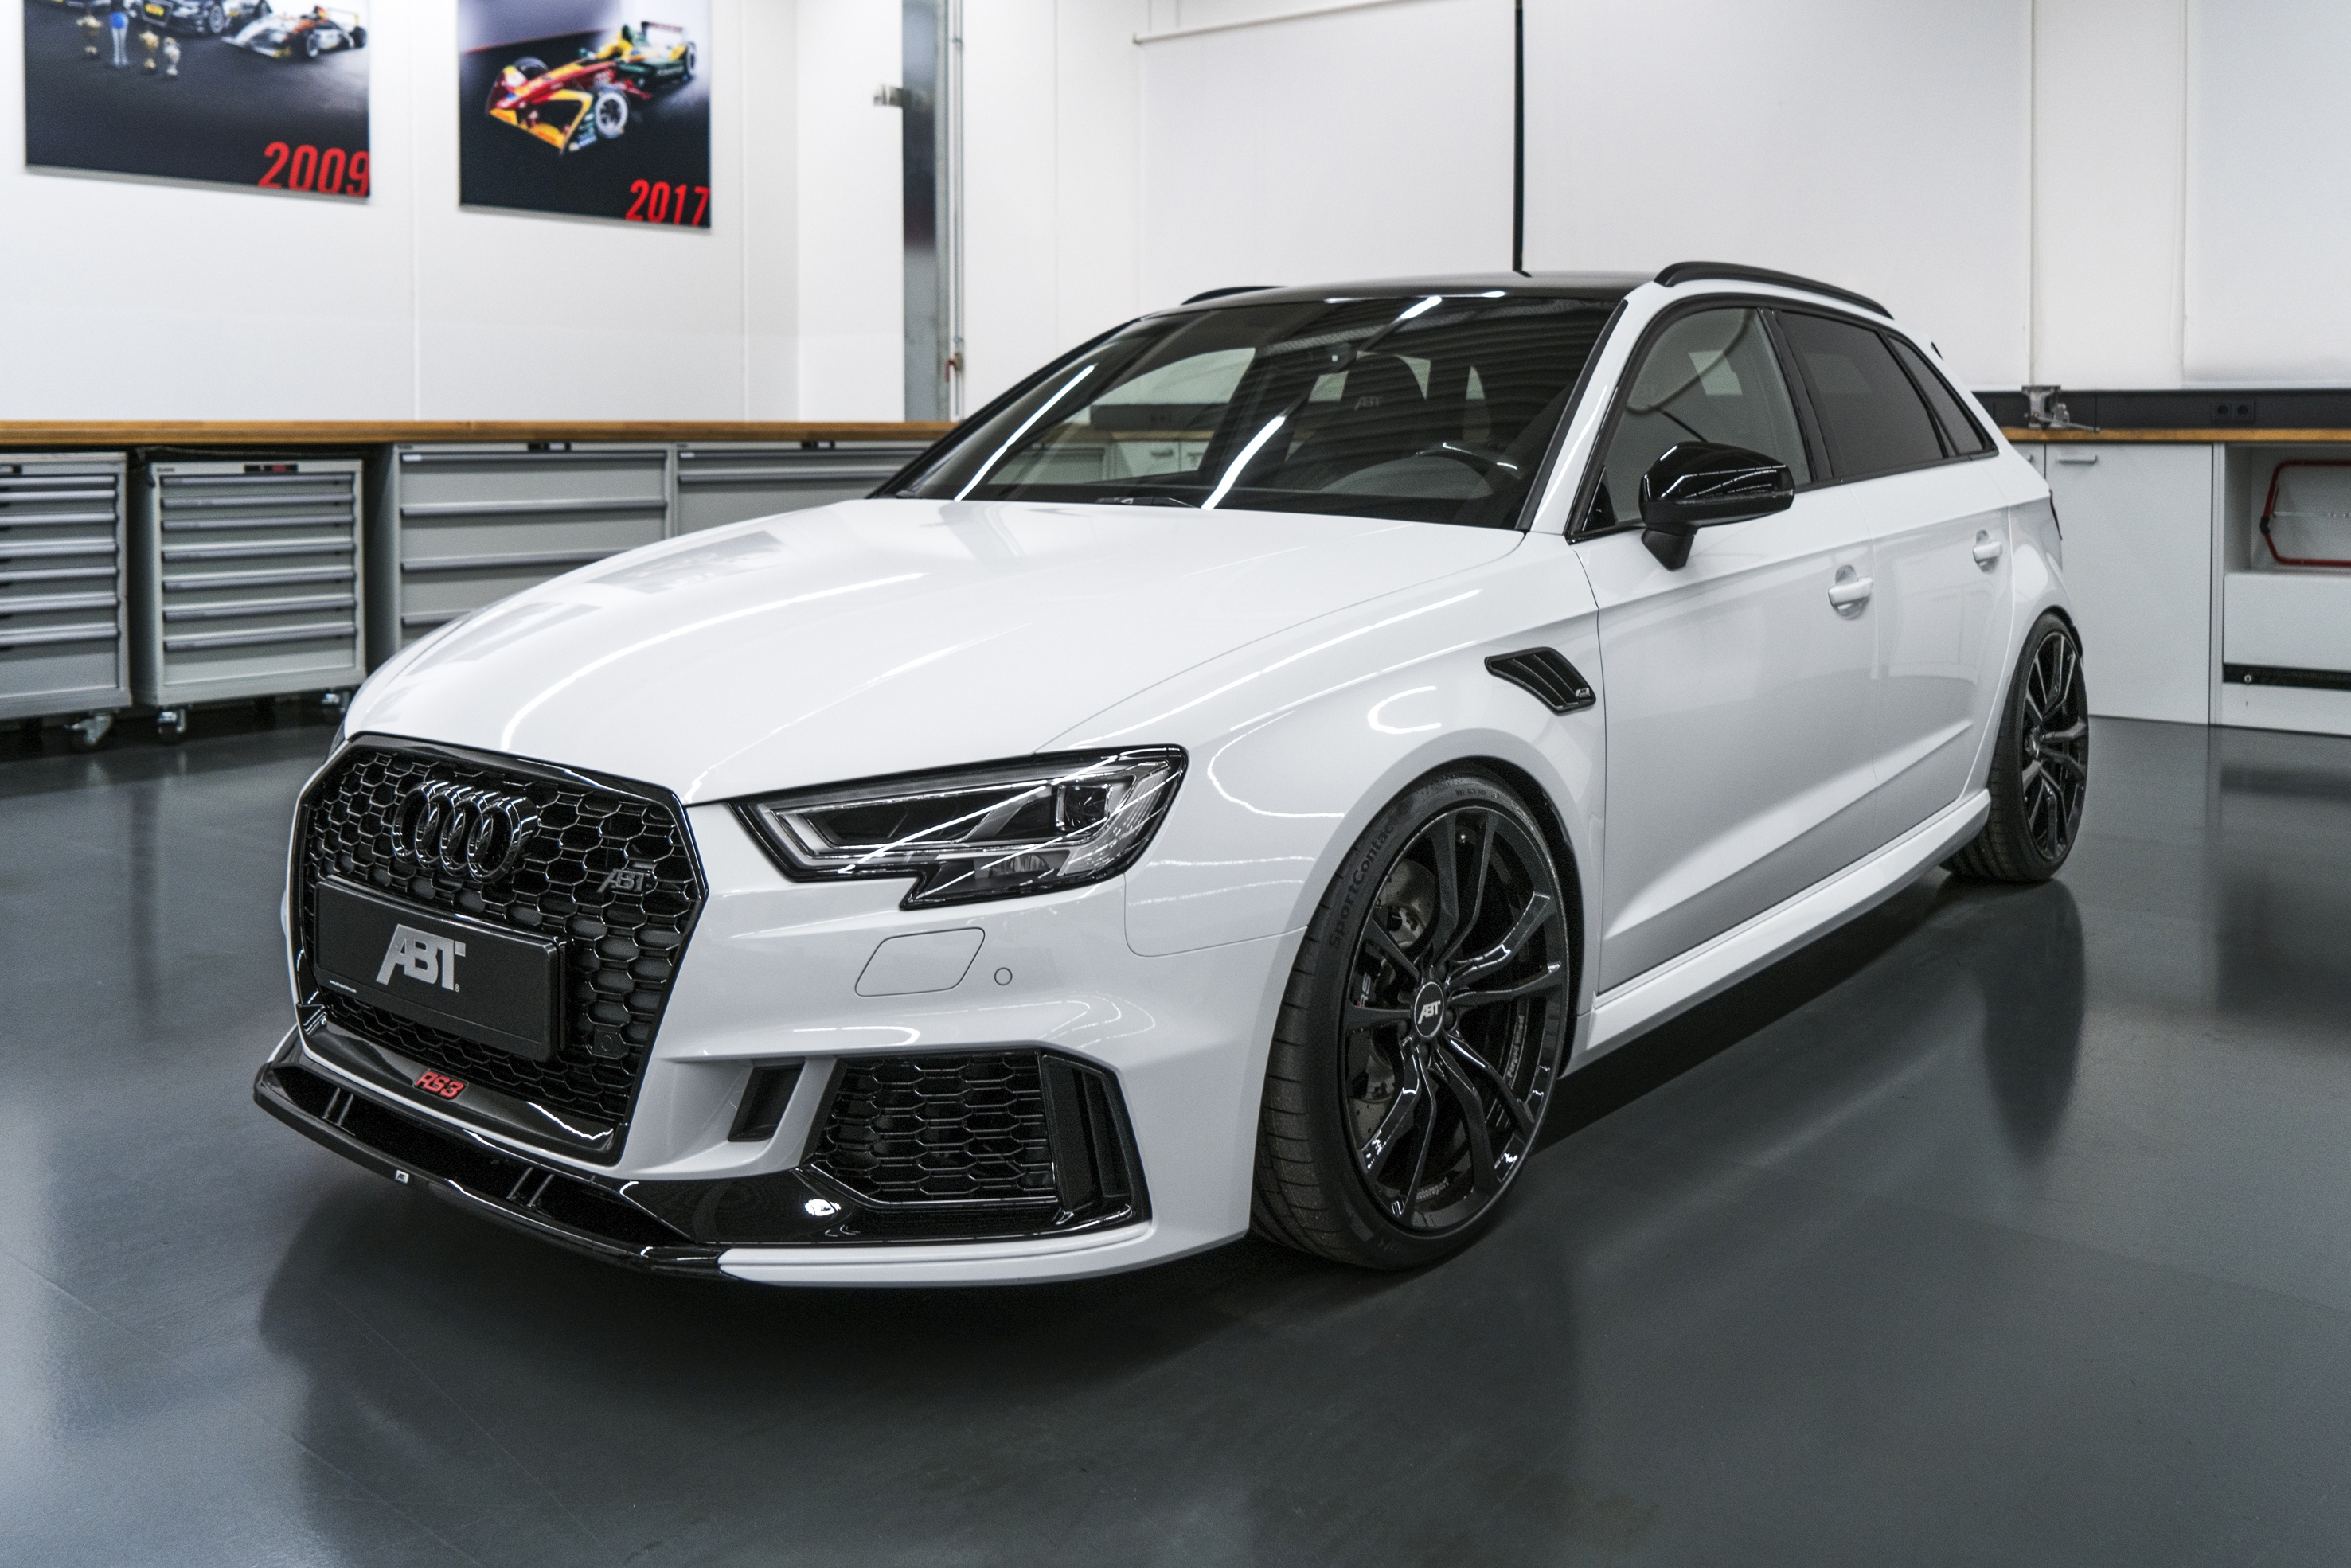 audi rs 3 recebe prepara o para ir aos 500 cv automais. Black Bedroom Furniture Sets. Home Design Ideas